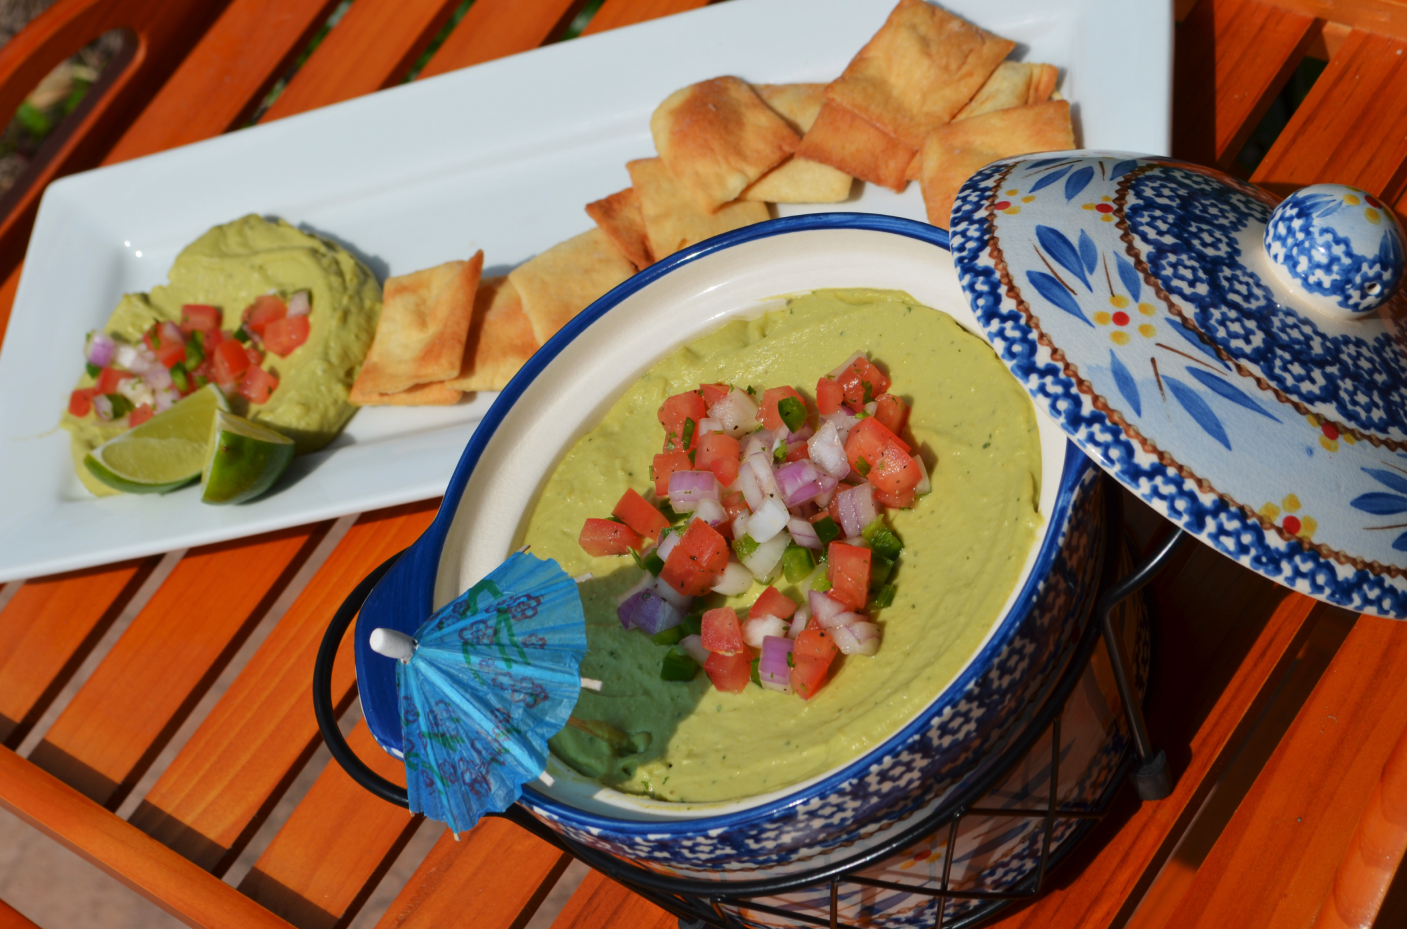 Medicated Avocado Hummus Dip by FOX & NUG